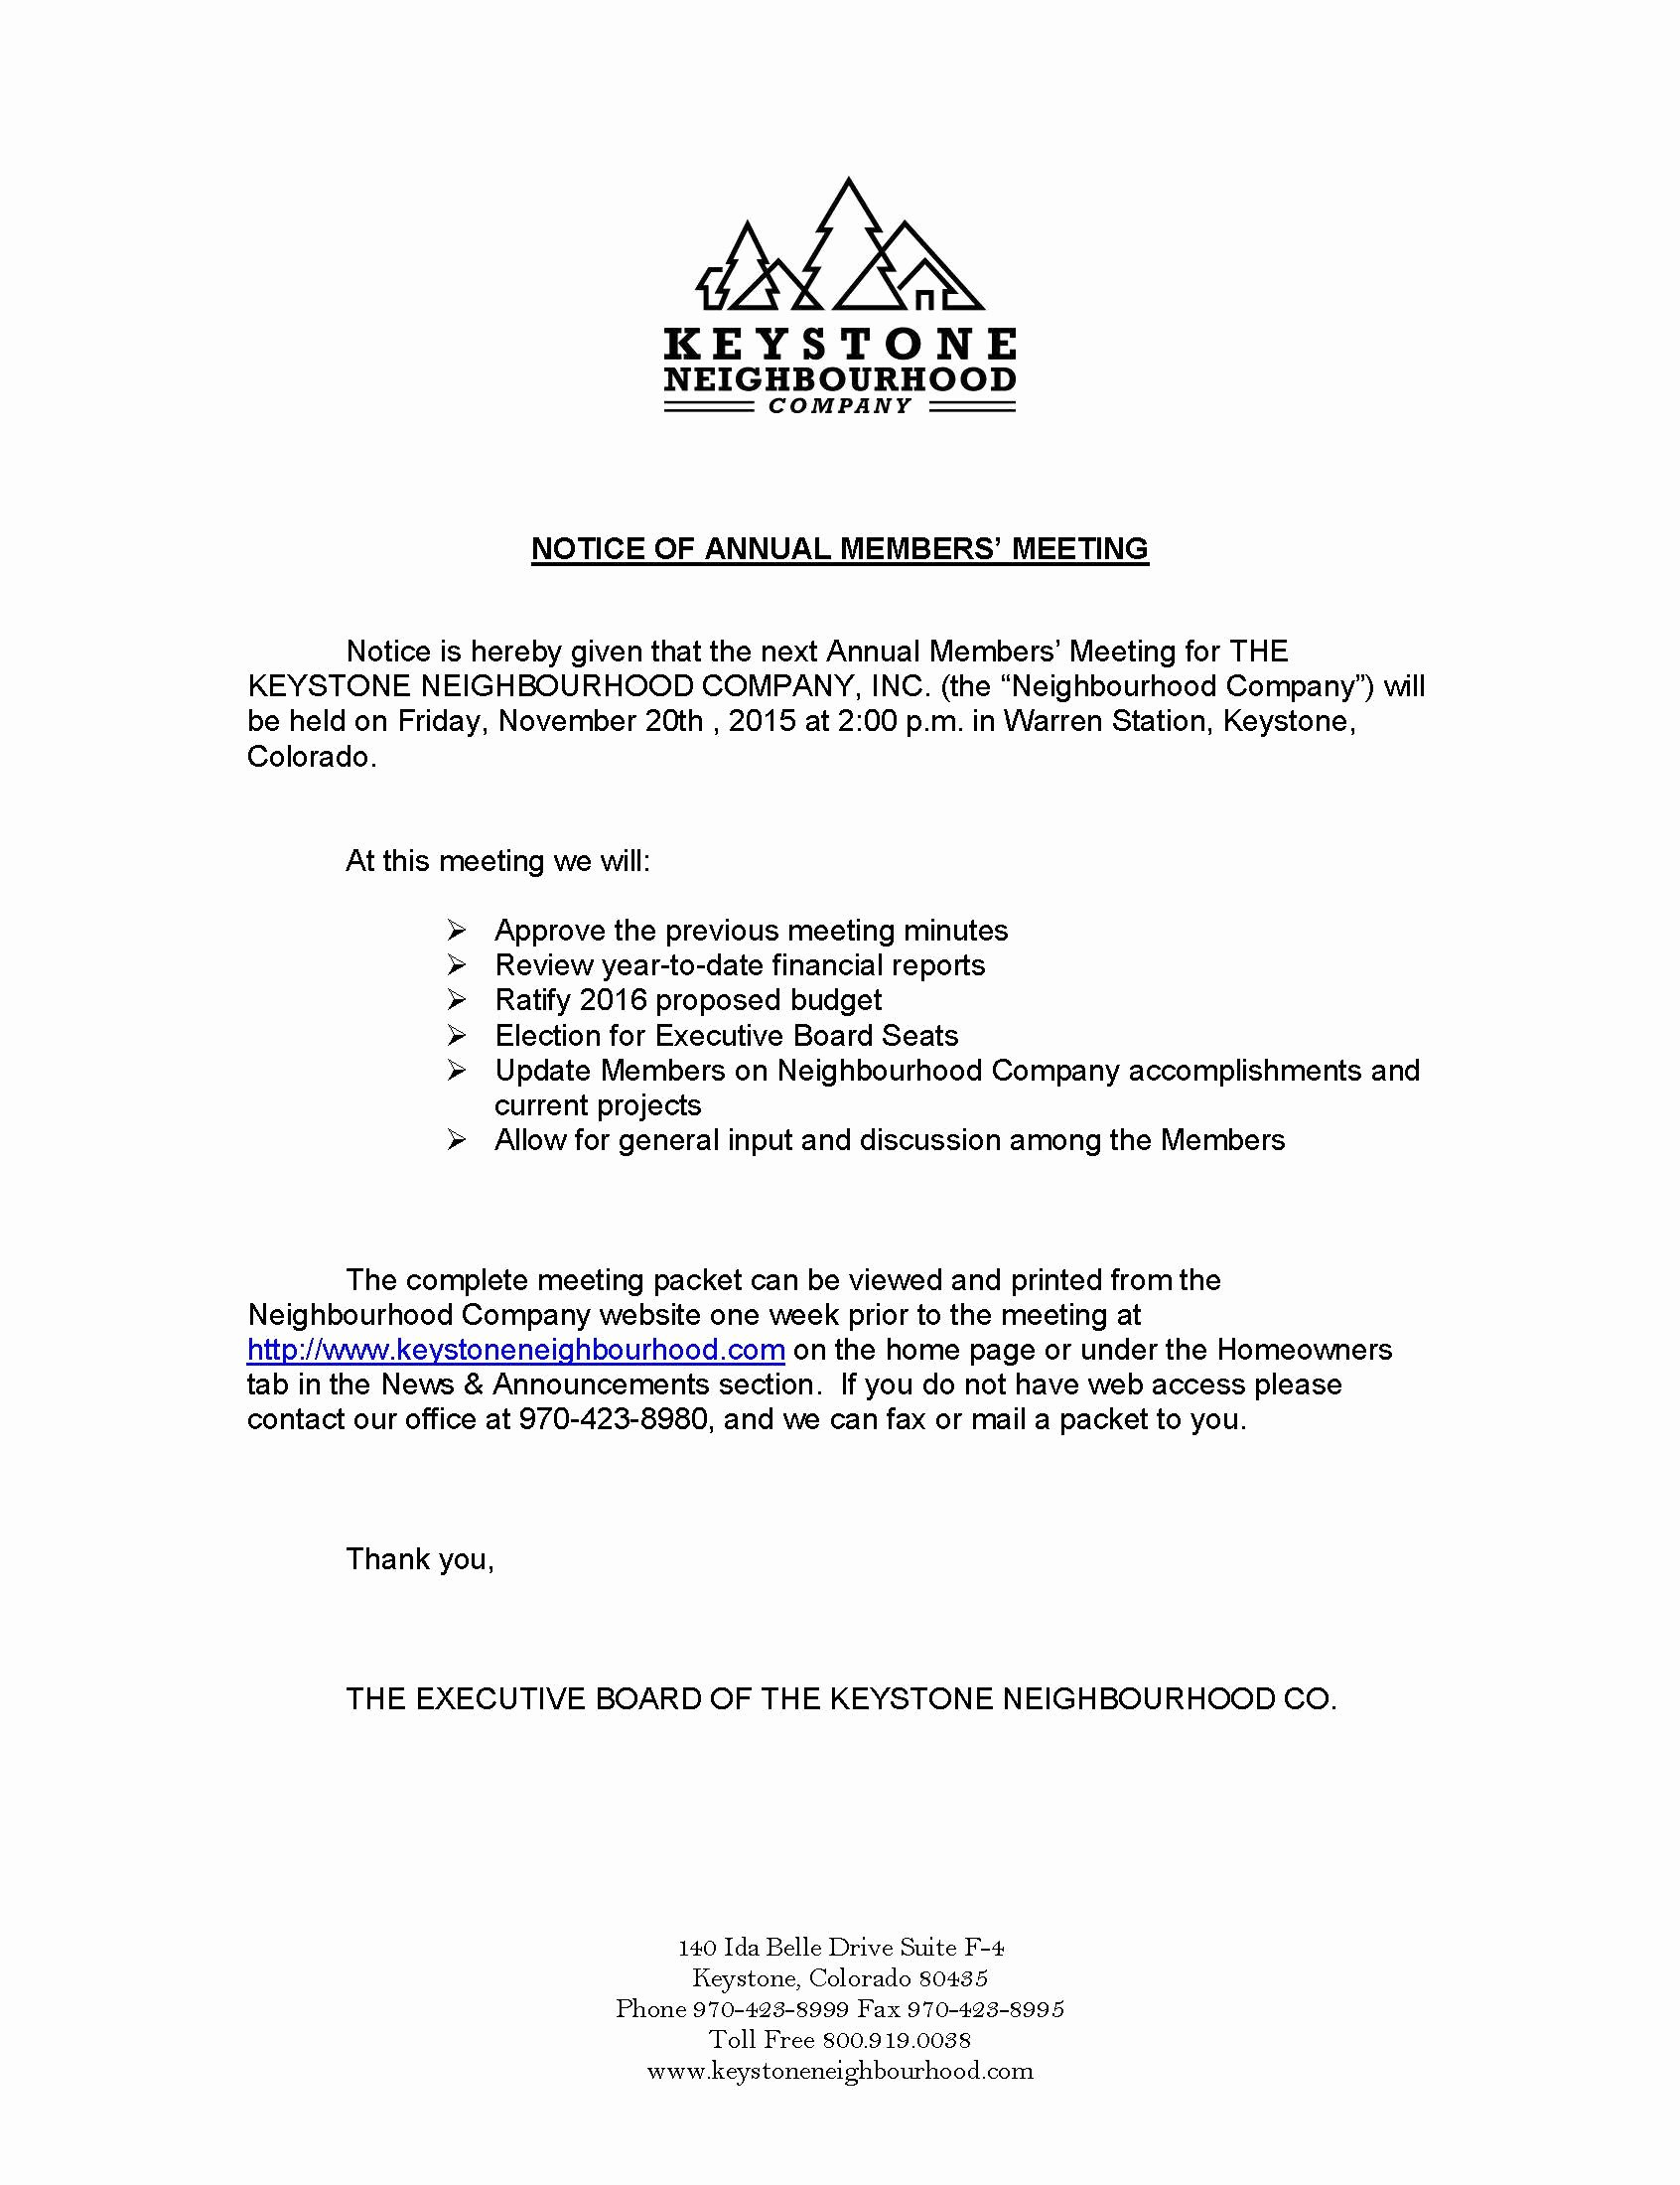 Notice Of Board Meeting Template Luxury Notice Of Annual Members Meeting & Call to Candidates